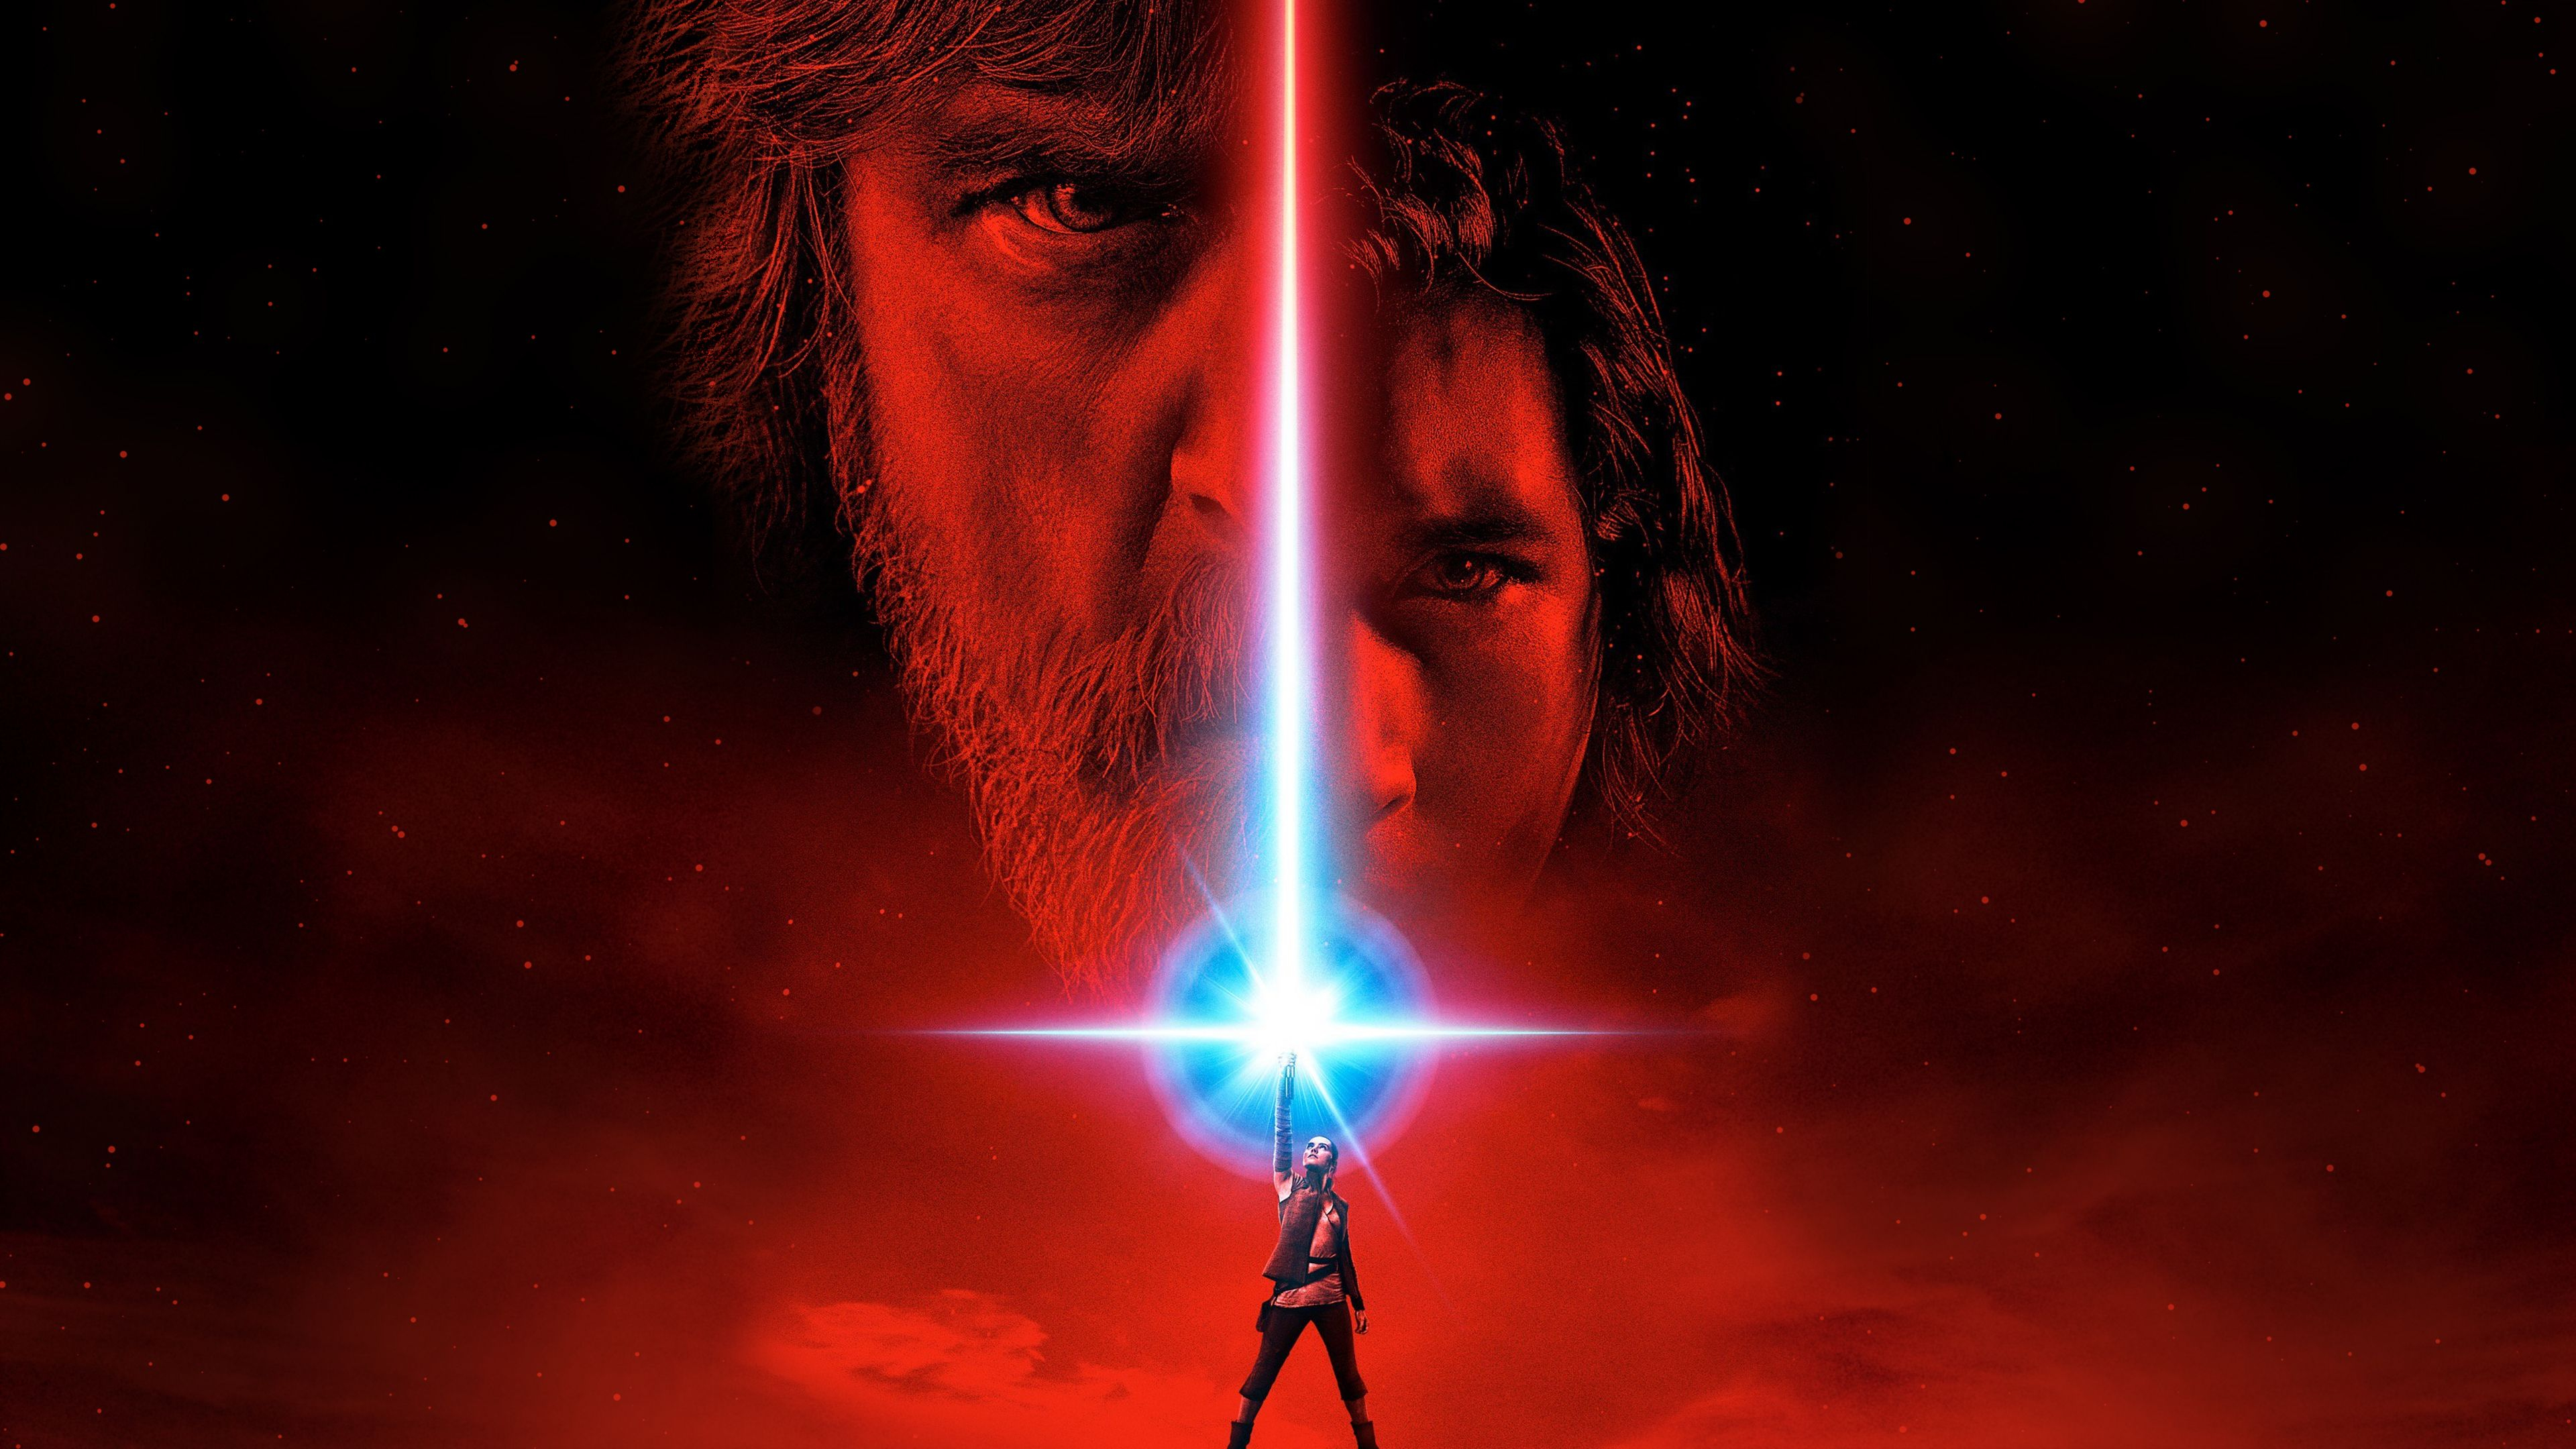 124 Star Wars: The Last Jedi HD Wallpapers